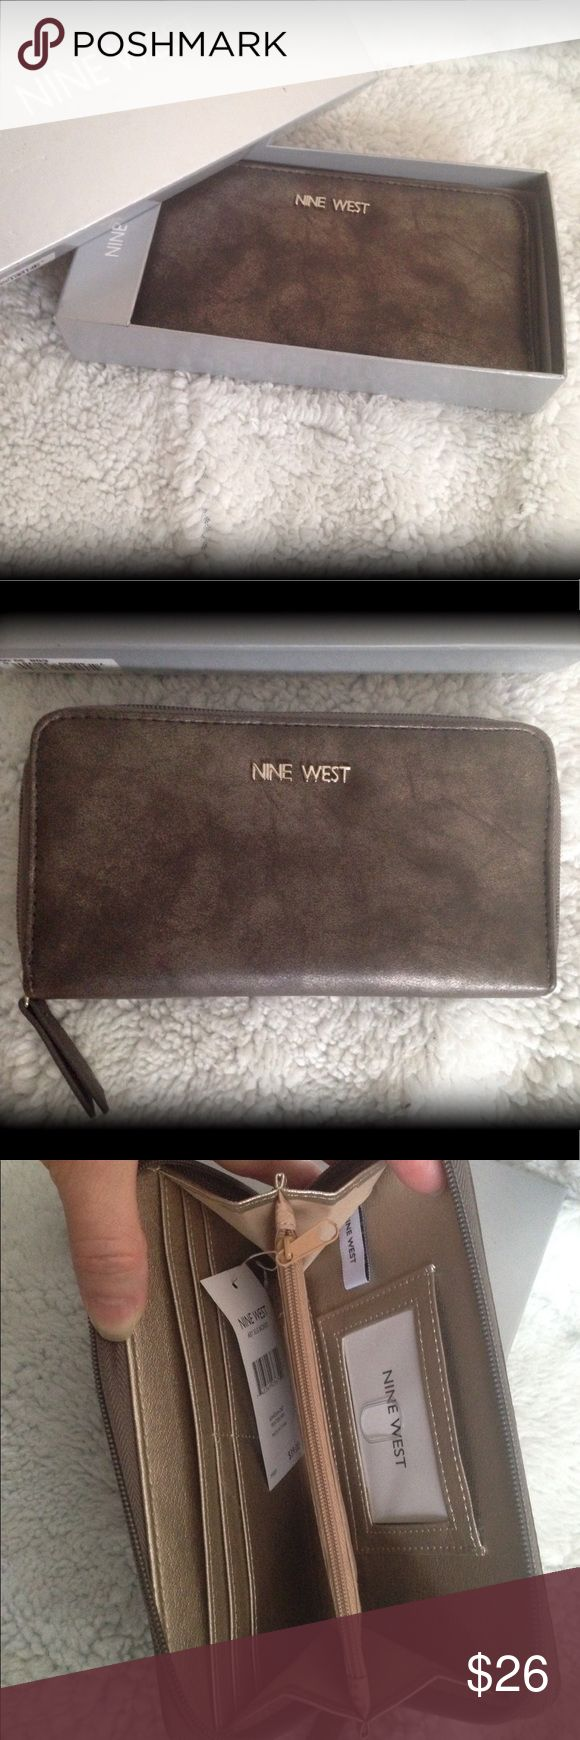 """Stylish Nine West wallet Goldfish bronze colors. Gold inside. Credit card slots, zipper and open pockets inside. Approx 4 ½"""" x 8"""". Nine West Bags Wallets"""